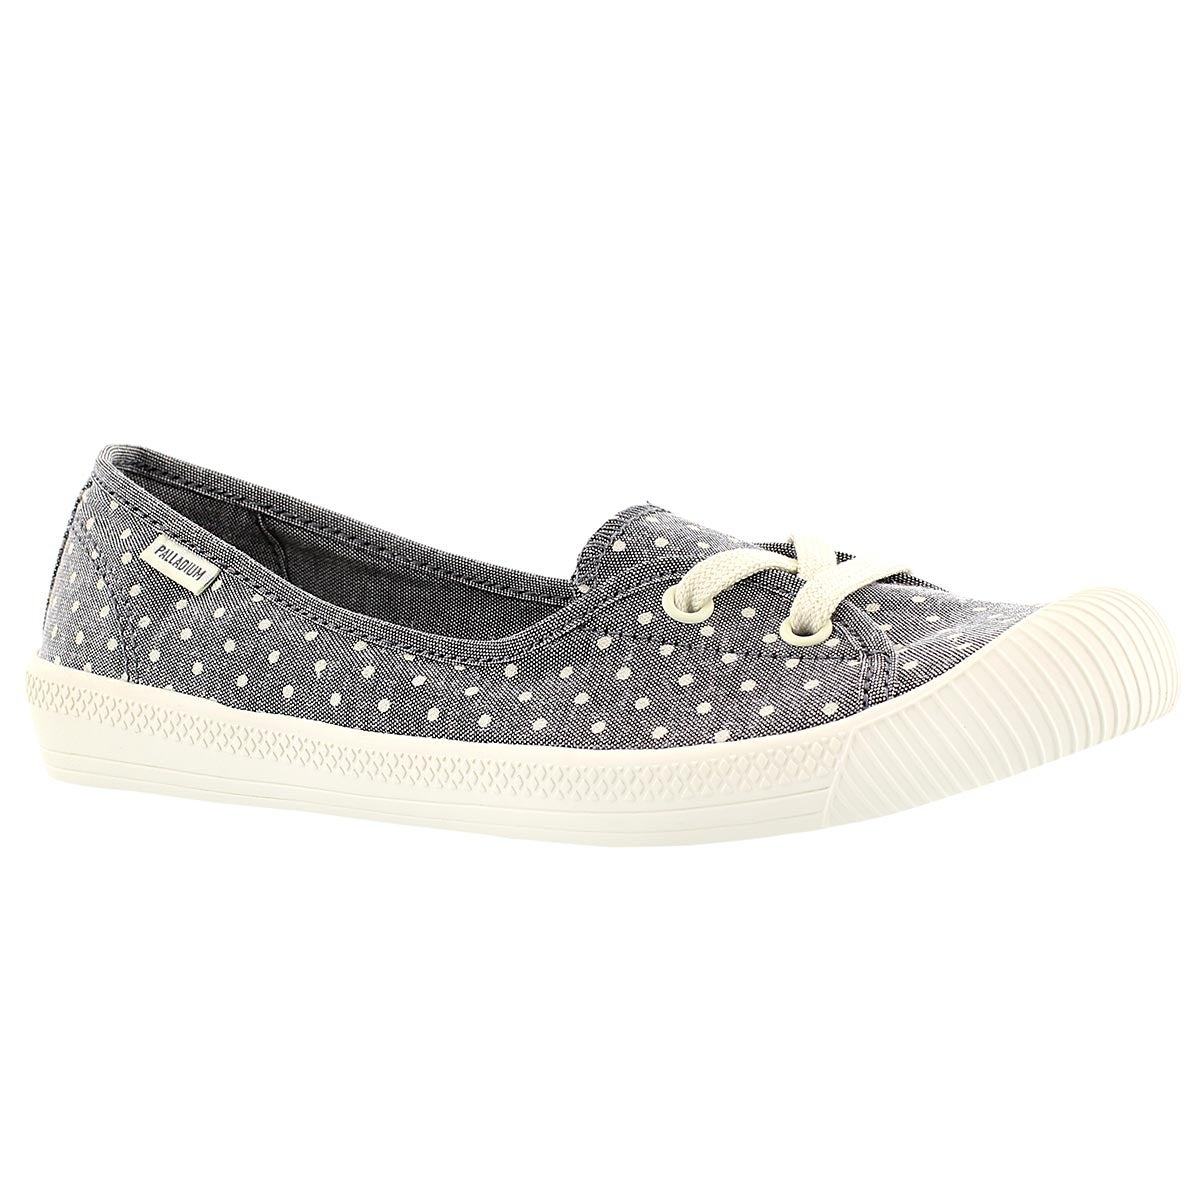 Women's FLEX BALLET grey/white dots sneakers